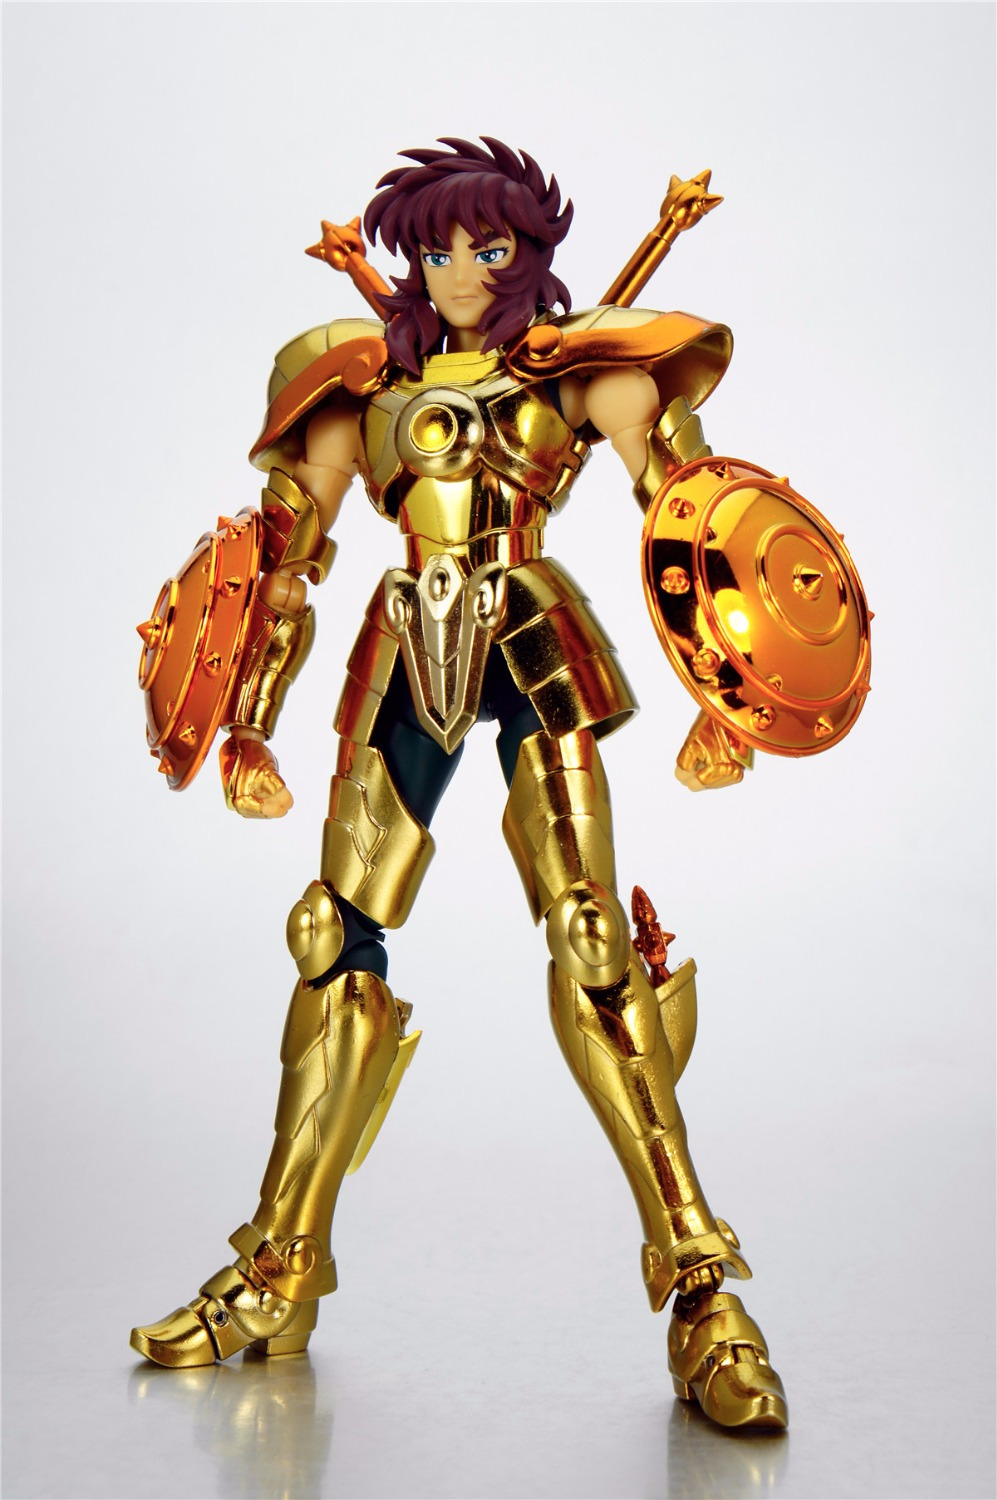 Speeding Model Libra Dohko action figure Saint Seiya Cloth Myth EX 2.0 metal armor CS Aurora model toy S13 стоимость